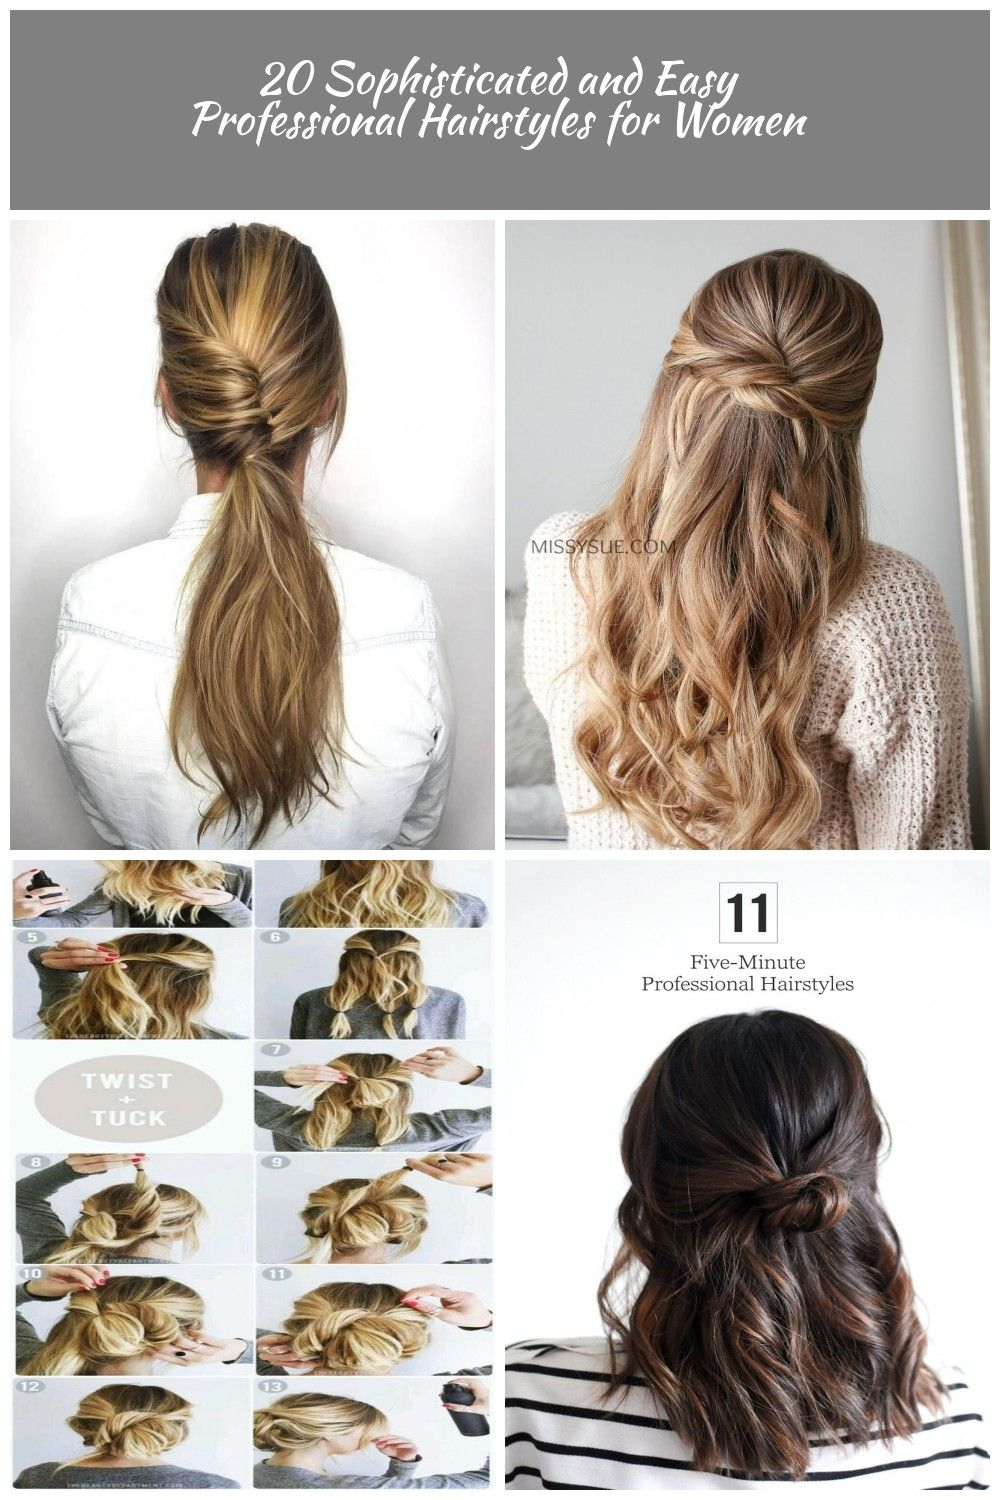 20 Sophisticated And Easy Professional Hairstyles For Women Professional Hairstyles 20 So Professional Hairstyles For Women Hair Styles Professional Hairstyles